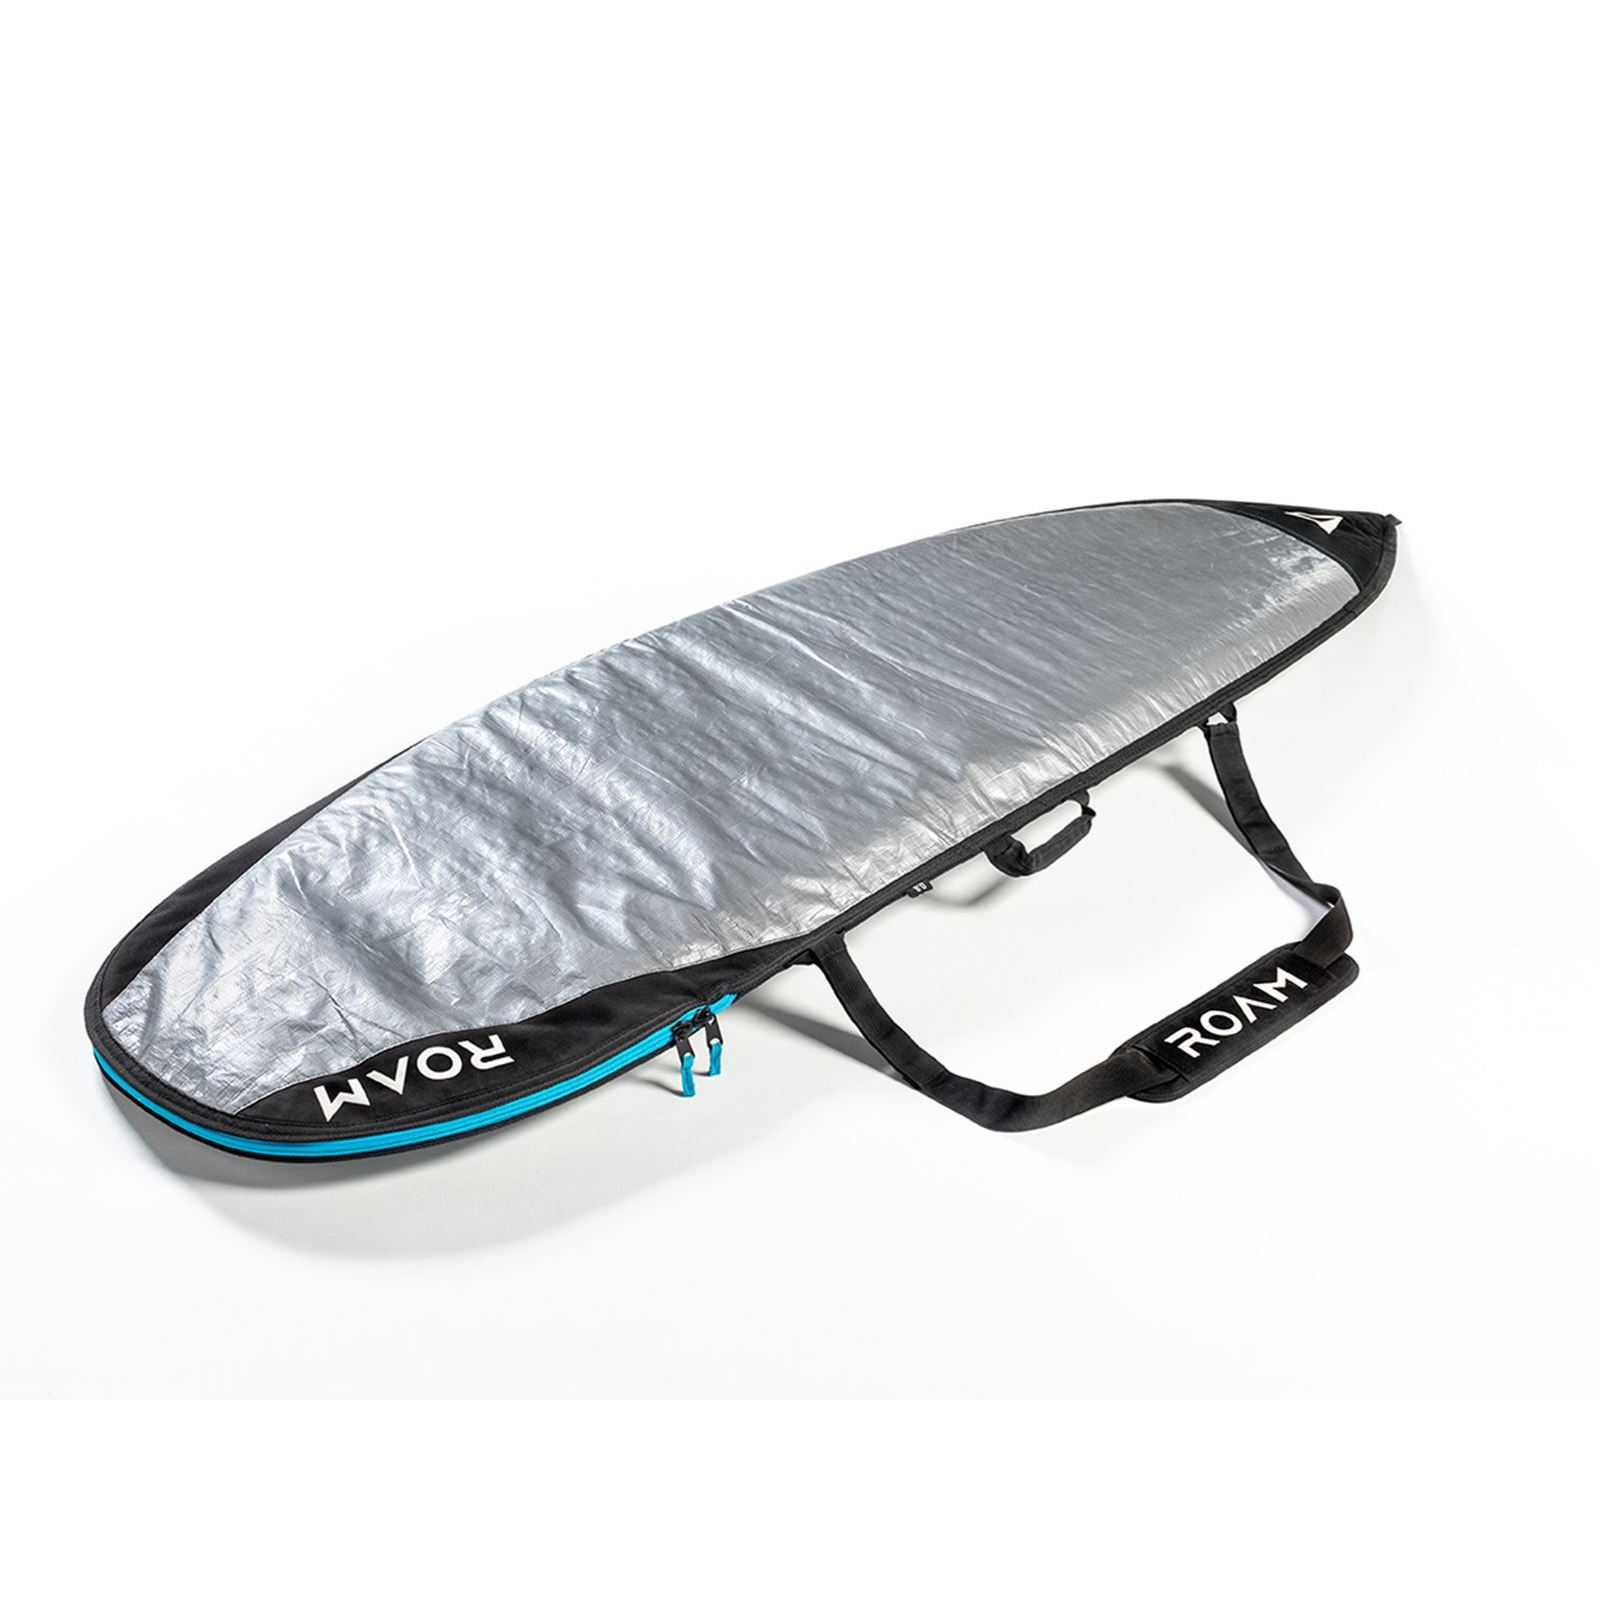 ROAM Boardbag Surfboard Daylight Shortboard 5.8